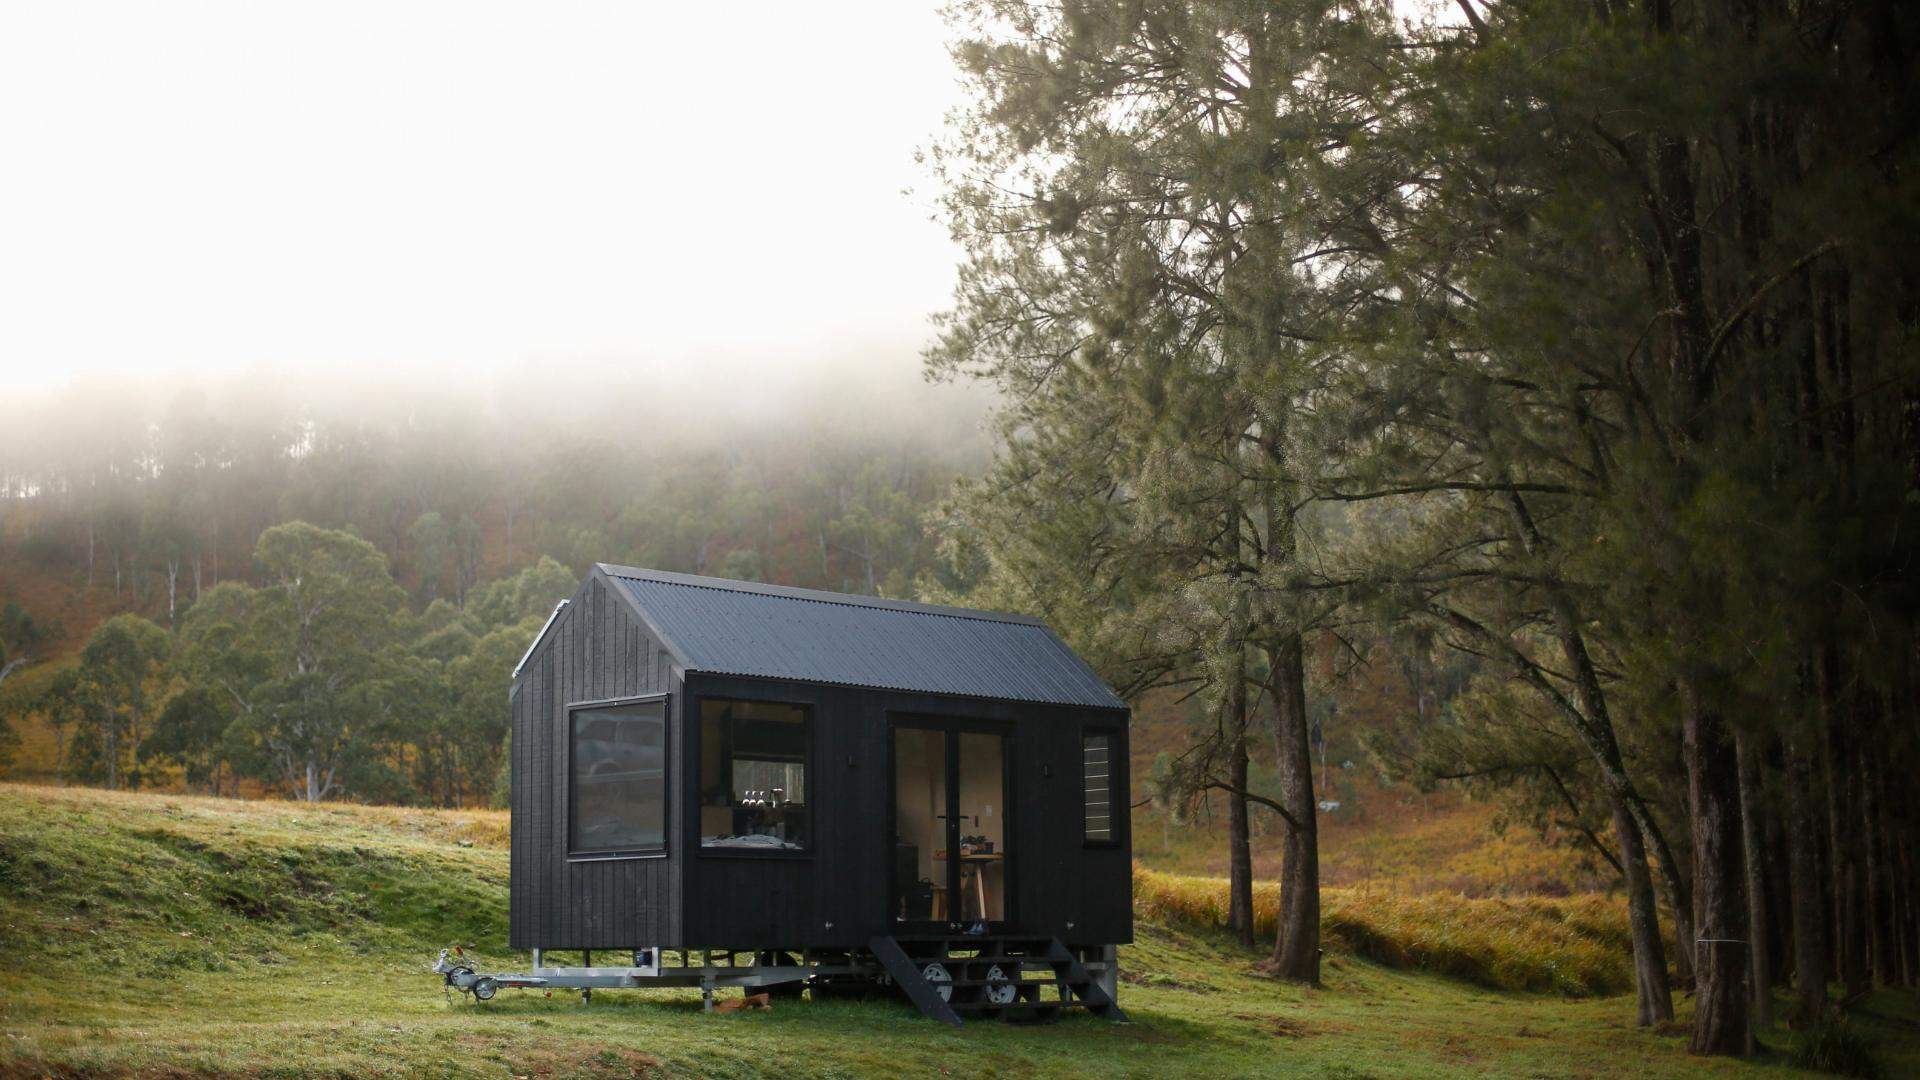 You Can Now Book This Tiny Off-Grid Cabin in the Bush for Your Next Spring Getaway